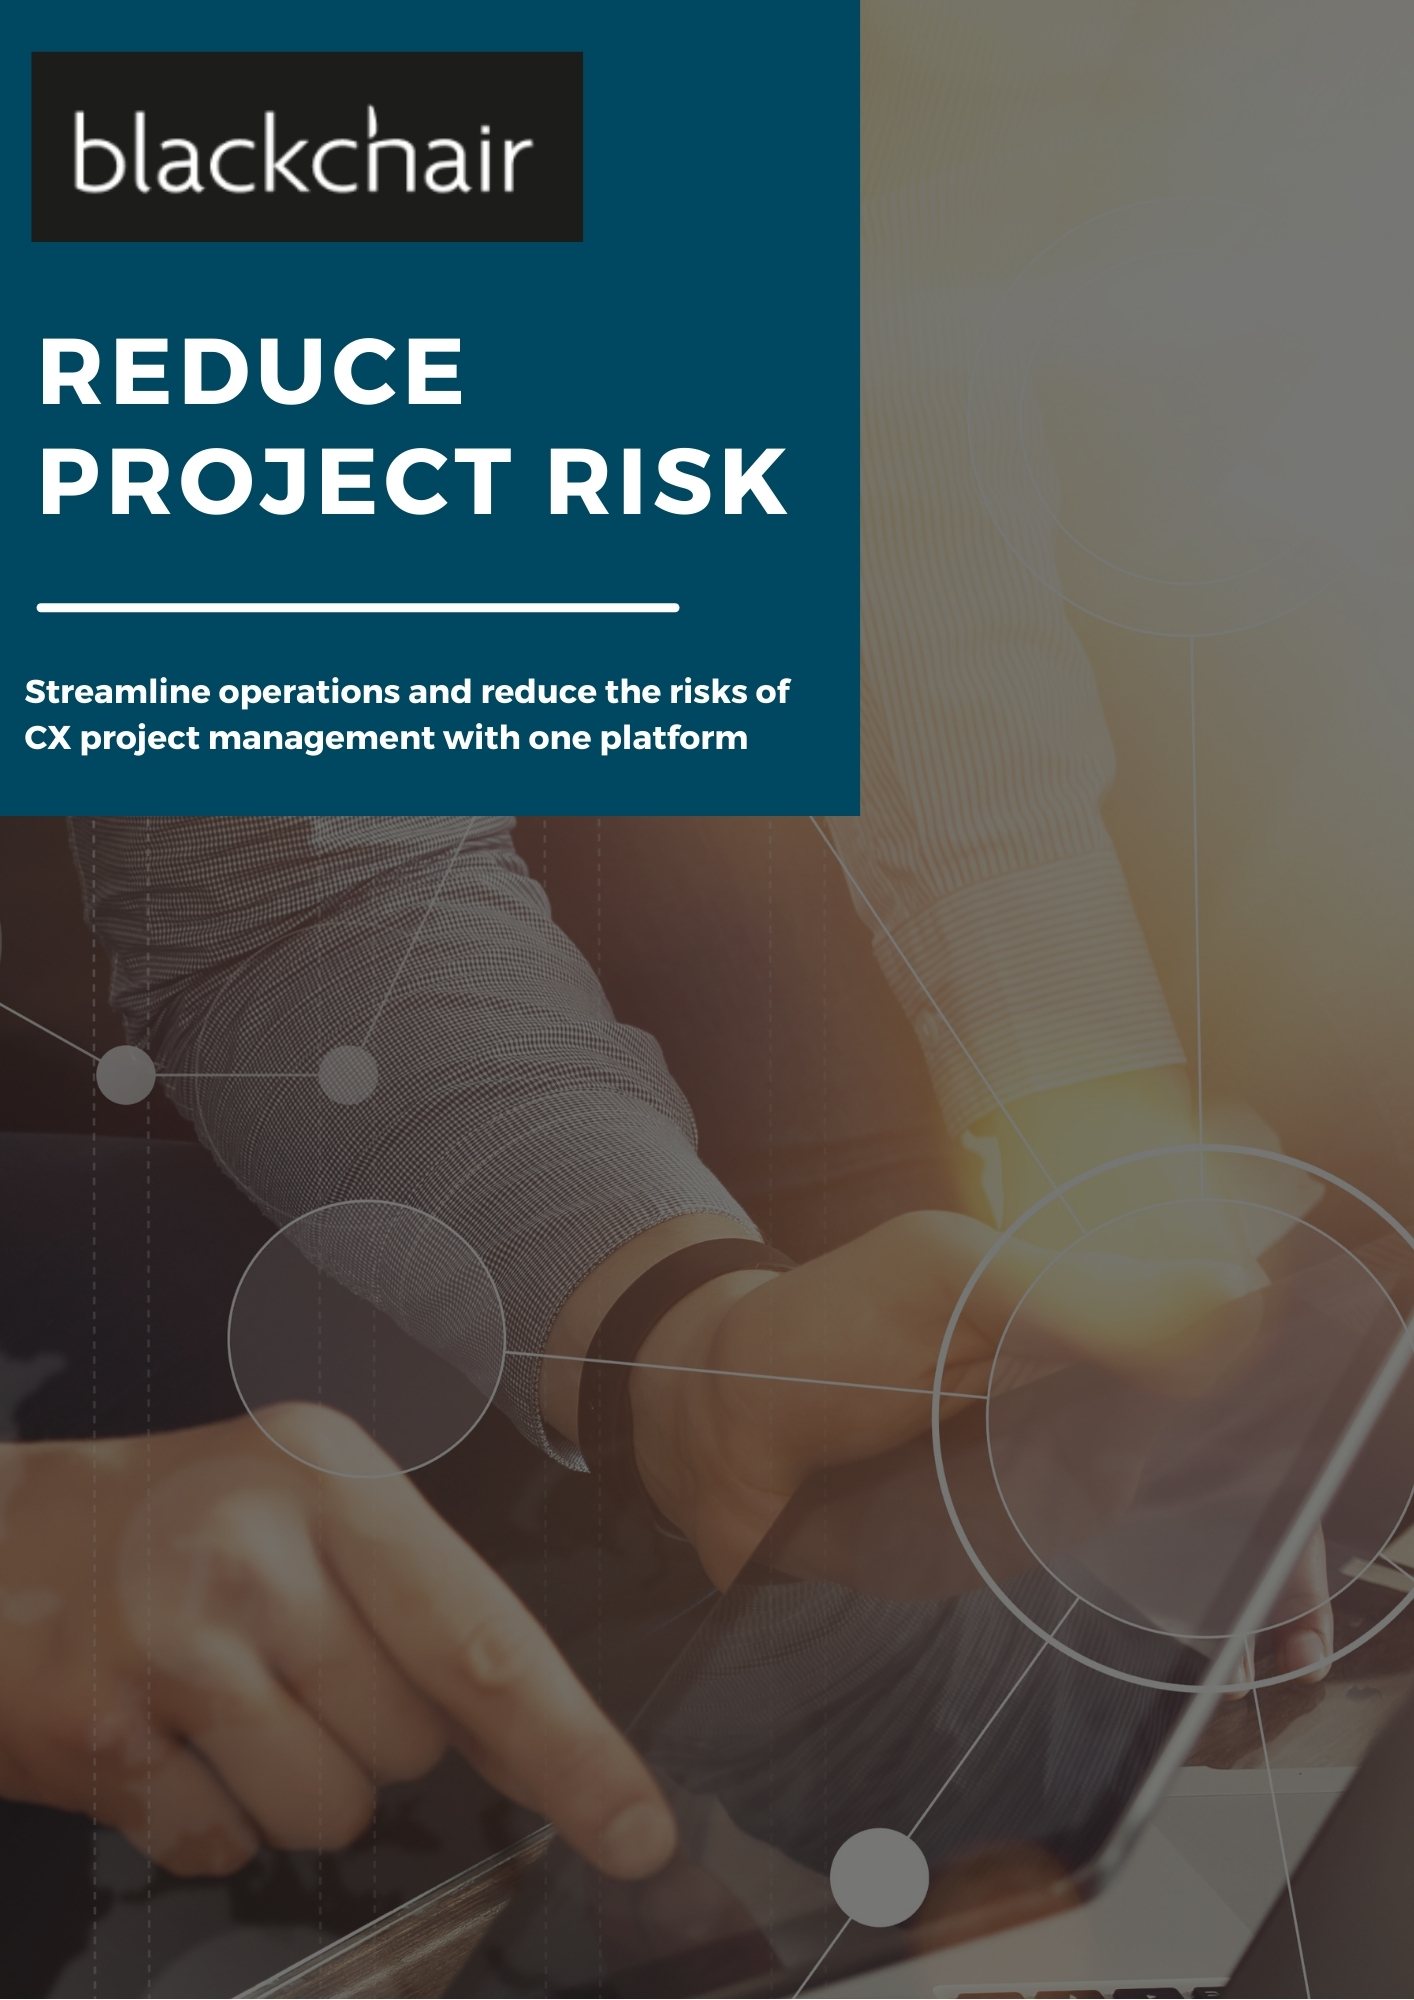 Blackchair - Brochures - Reduce Project Risk Streamline Operations And Reduce CX Project Management Risks